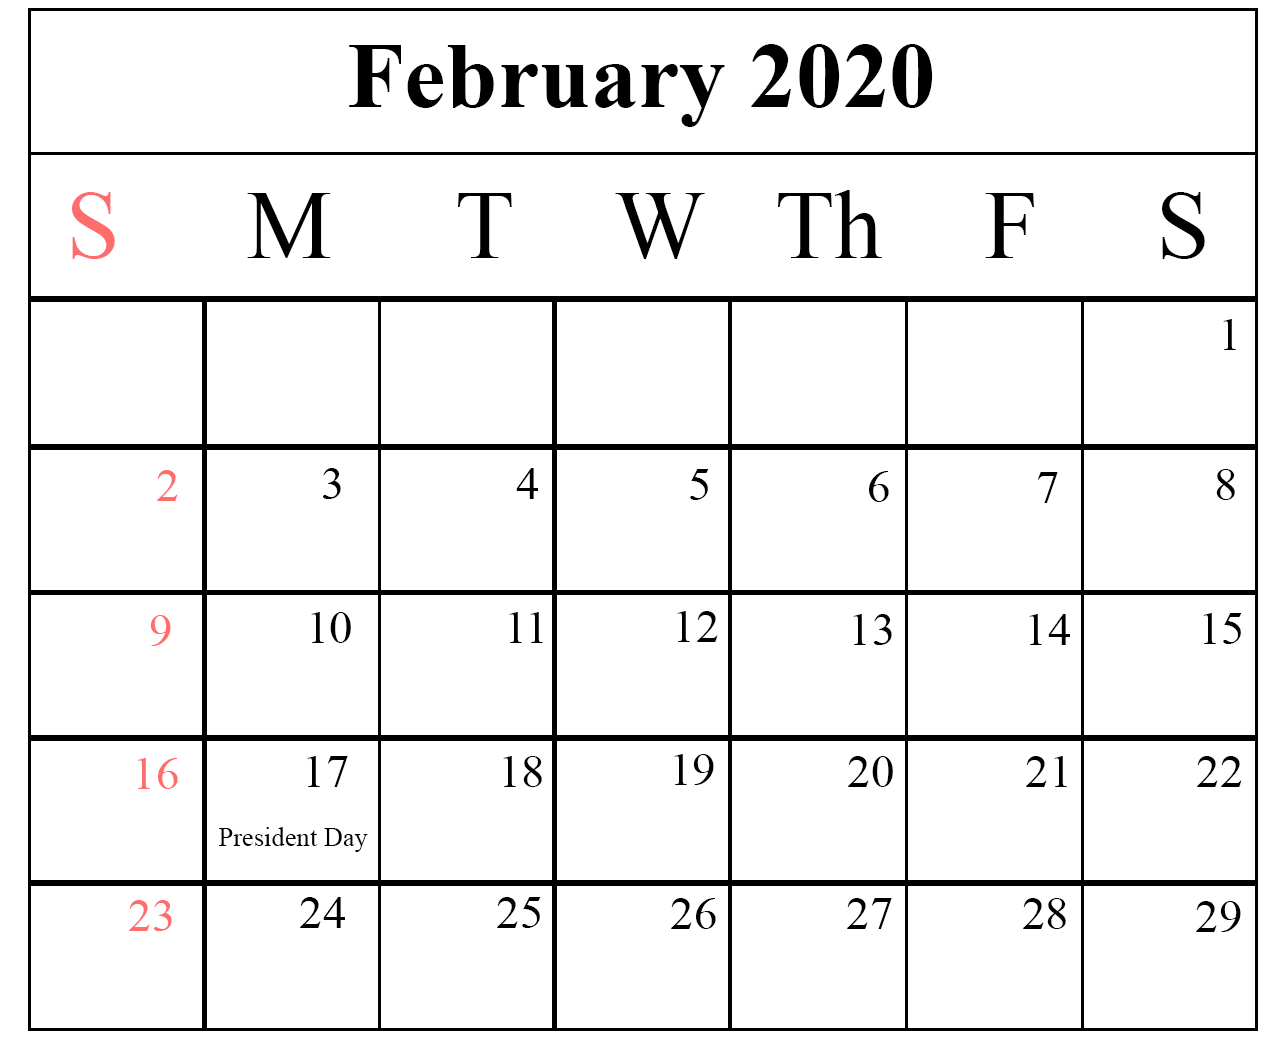 February 2020 Calendar For Workouts How To Schedule Your Month With February 2020 Printable Calendar